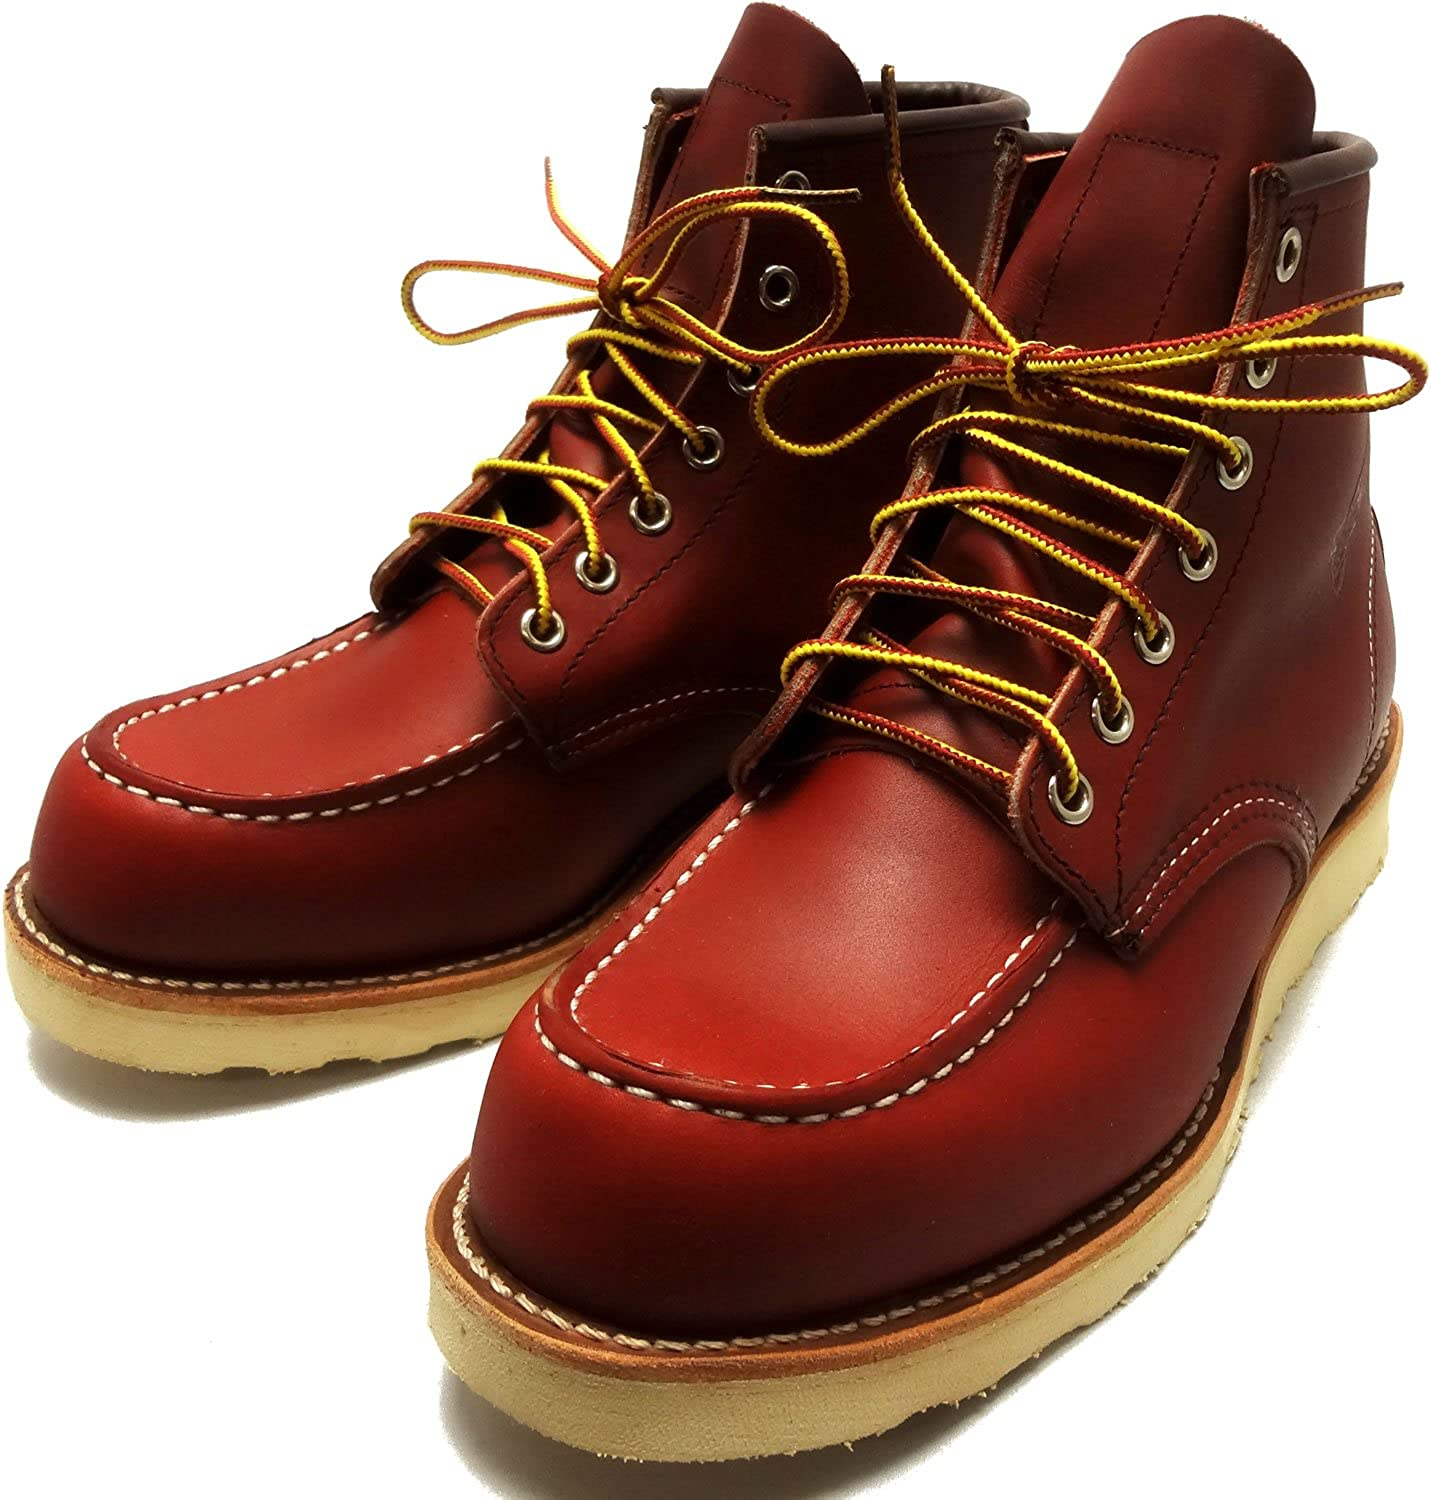 Redwing Redwing Boots # 8875 Classic